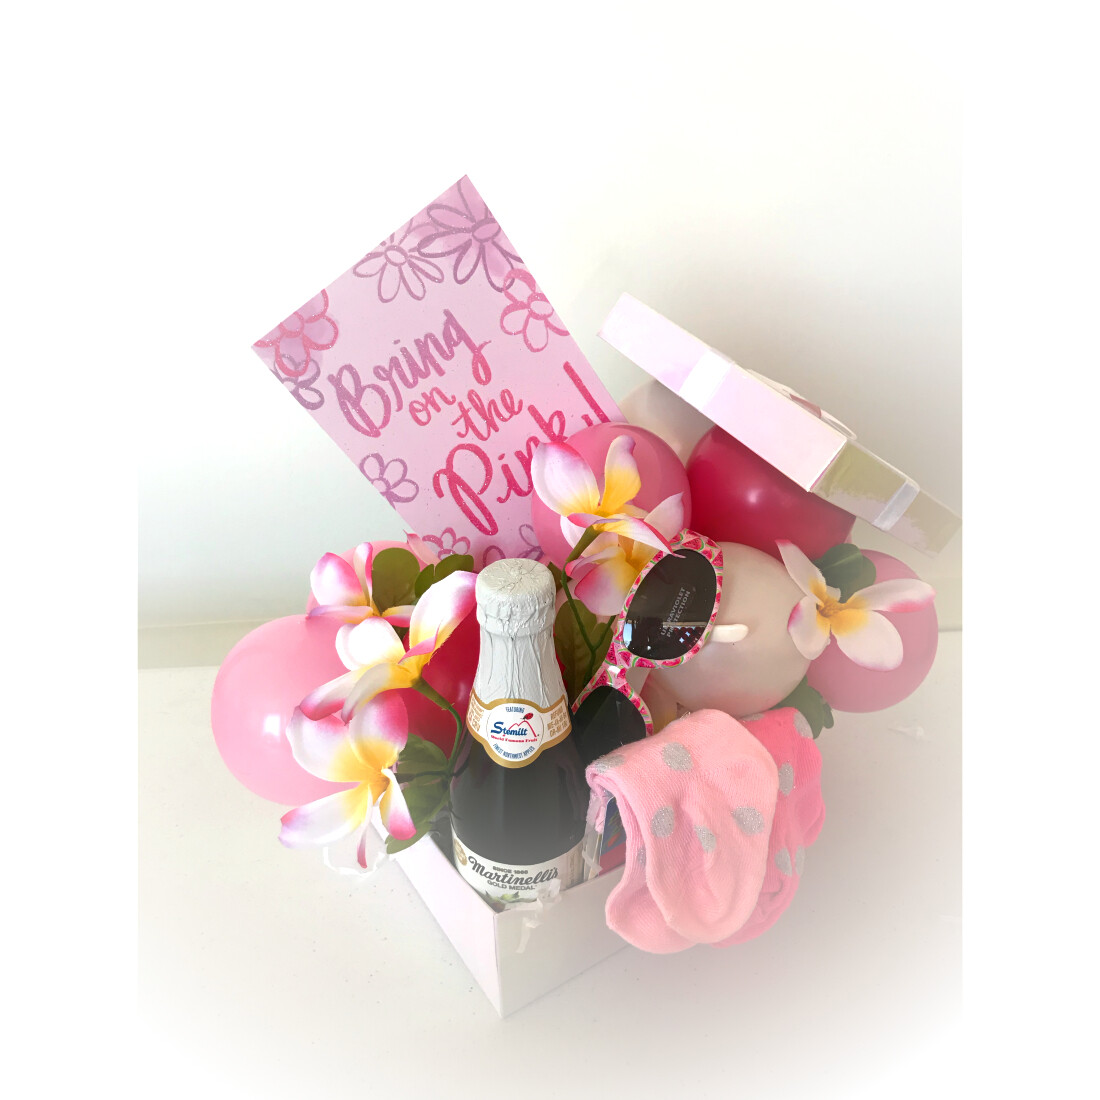 Gift box bursting with balloons, artist's choice of gifts